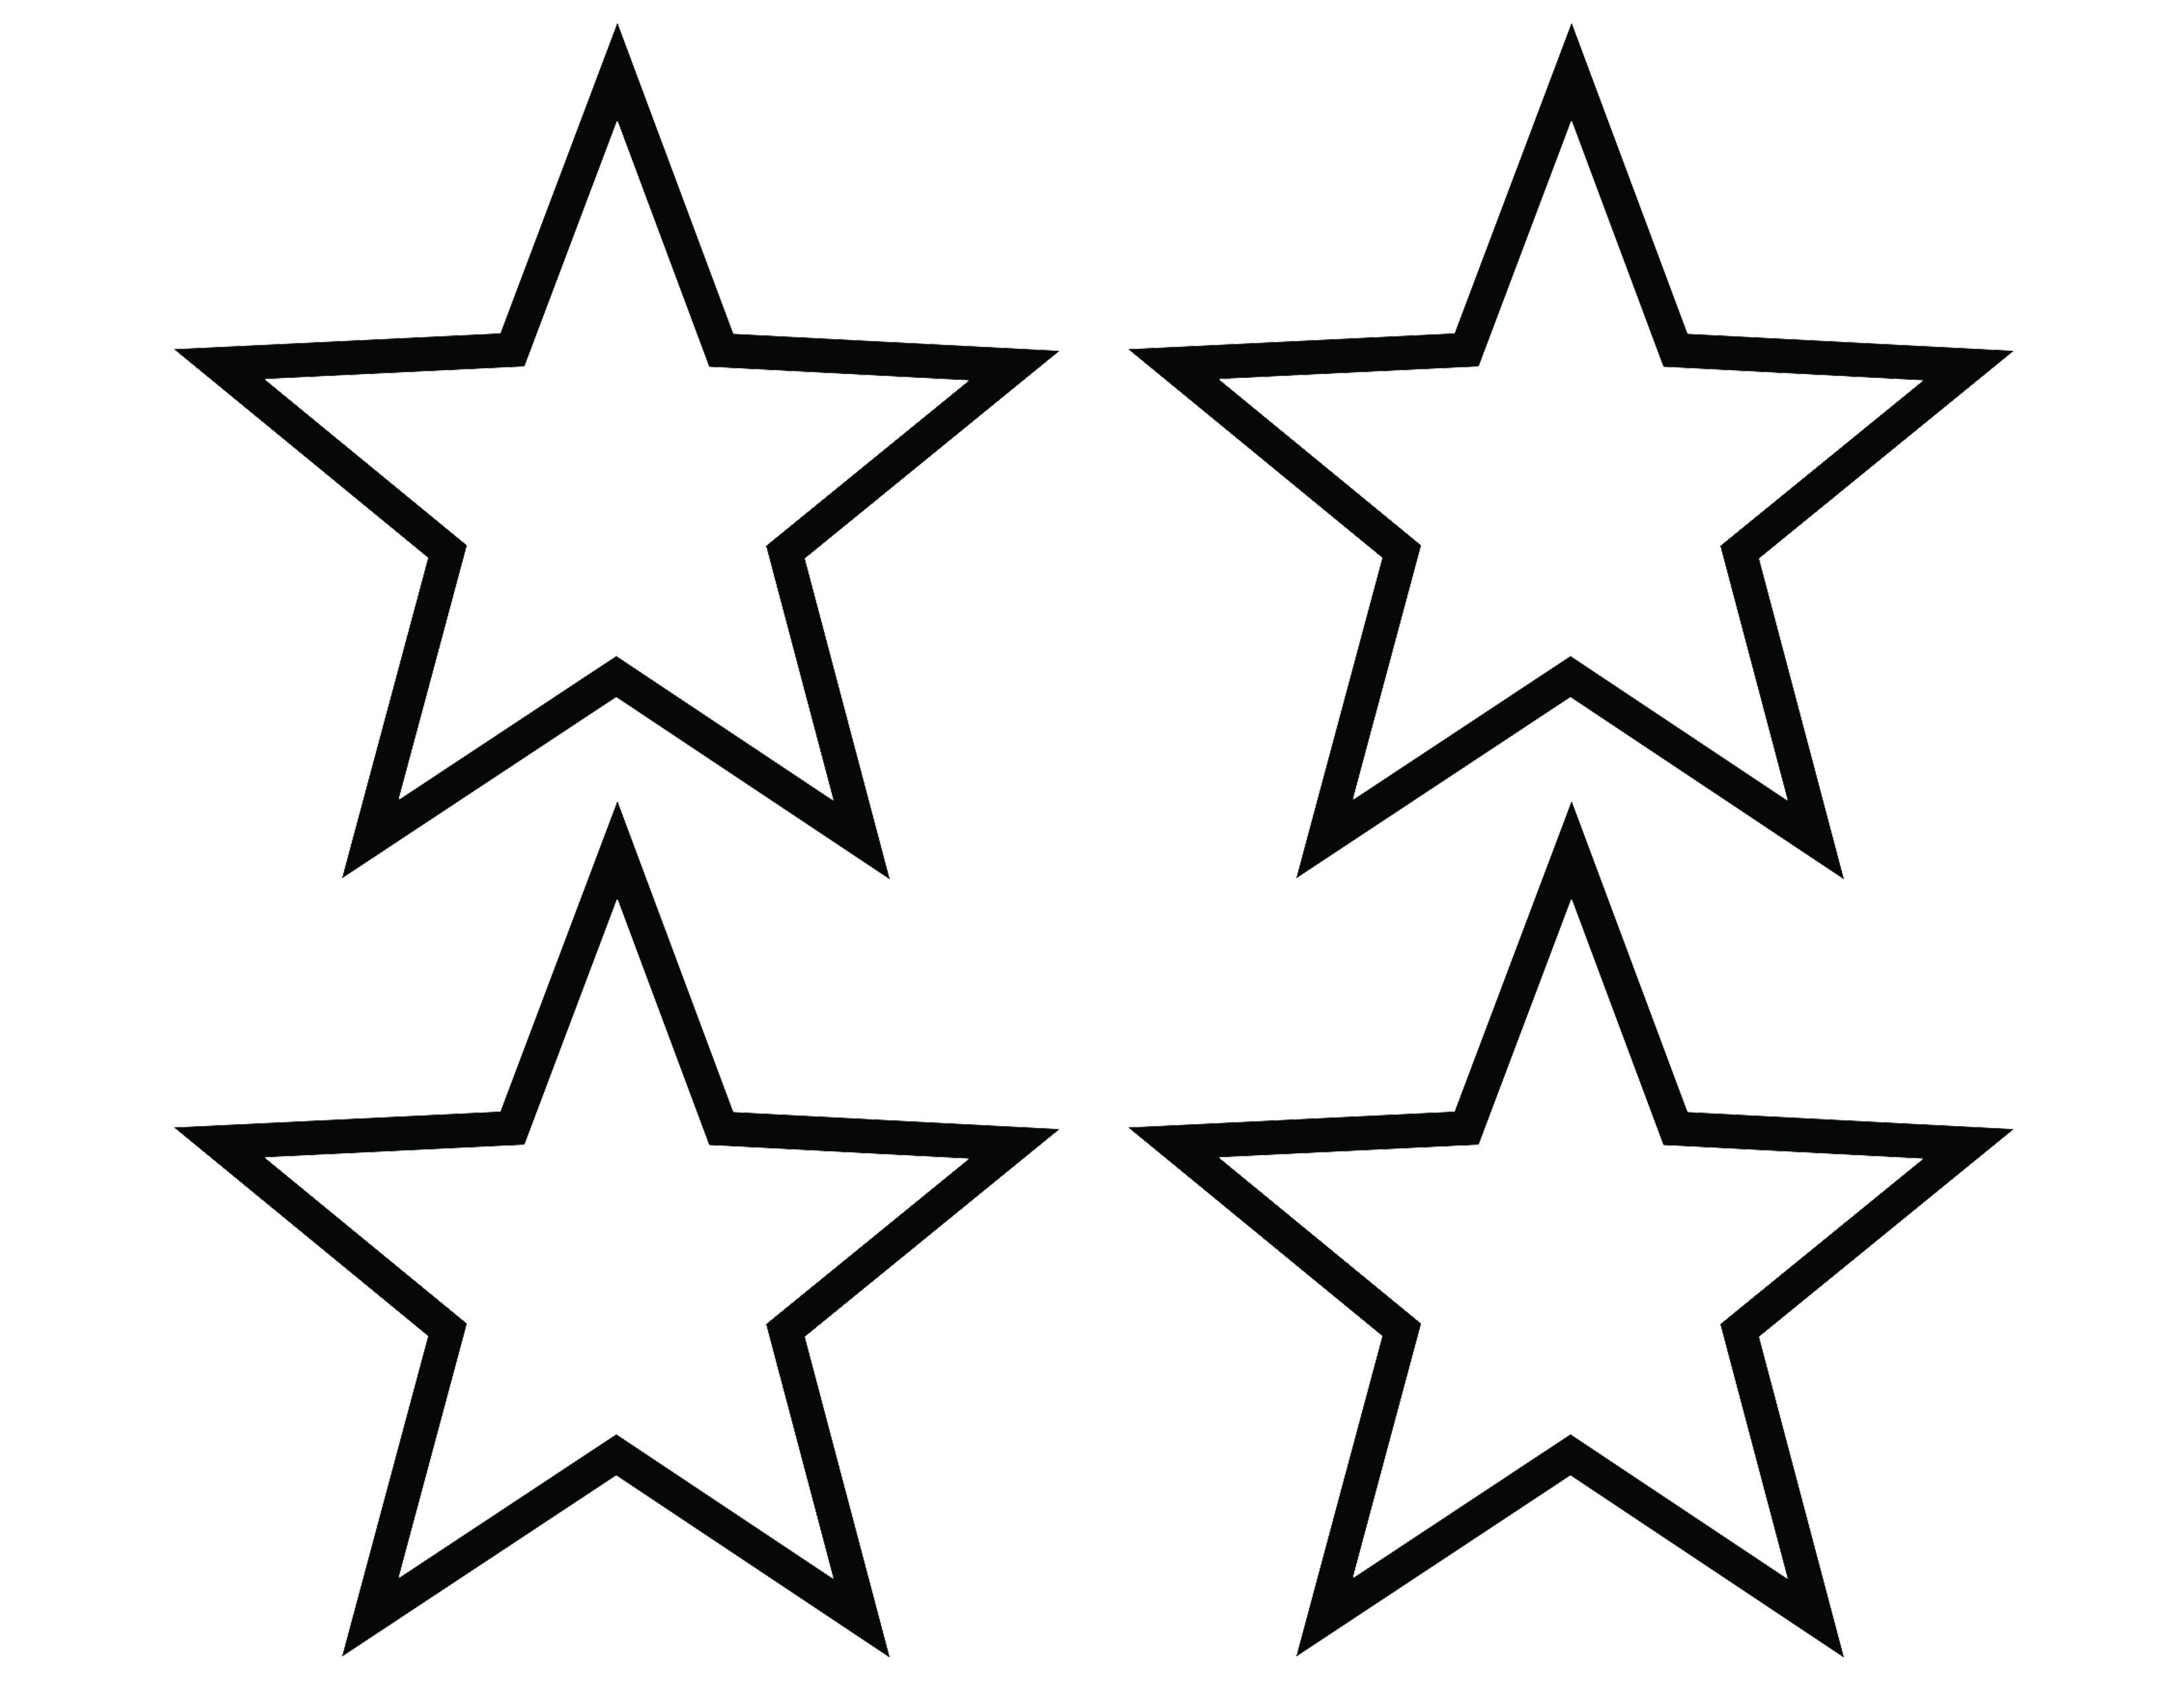 A Template For Star-shaped Name Tags For Preschoolers